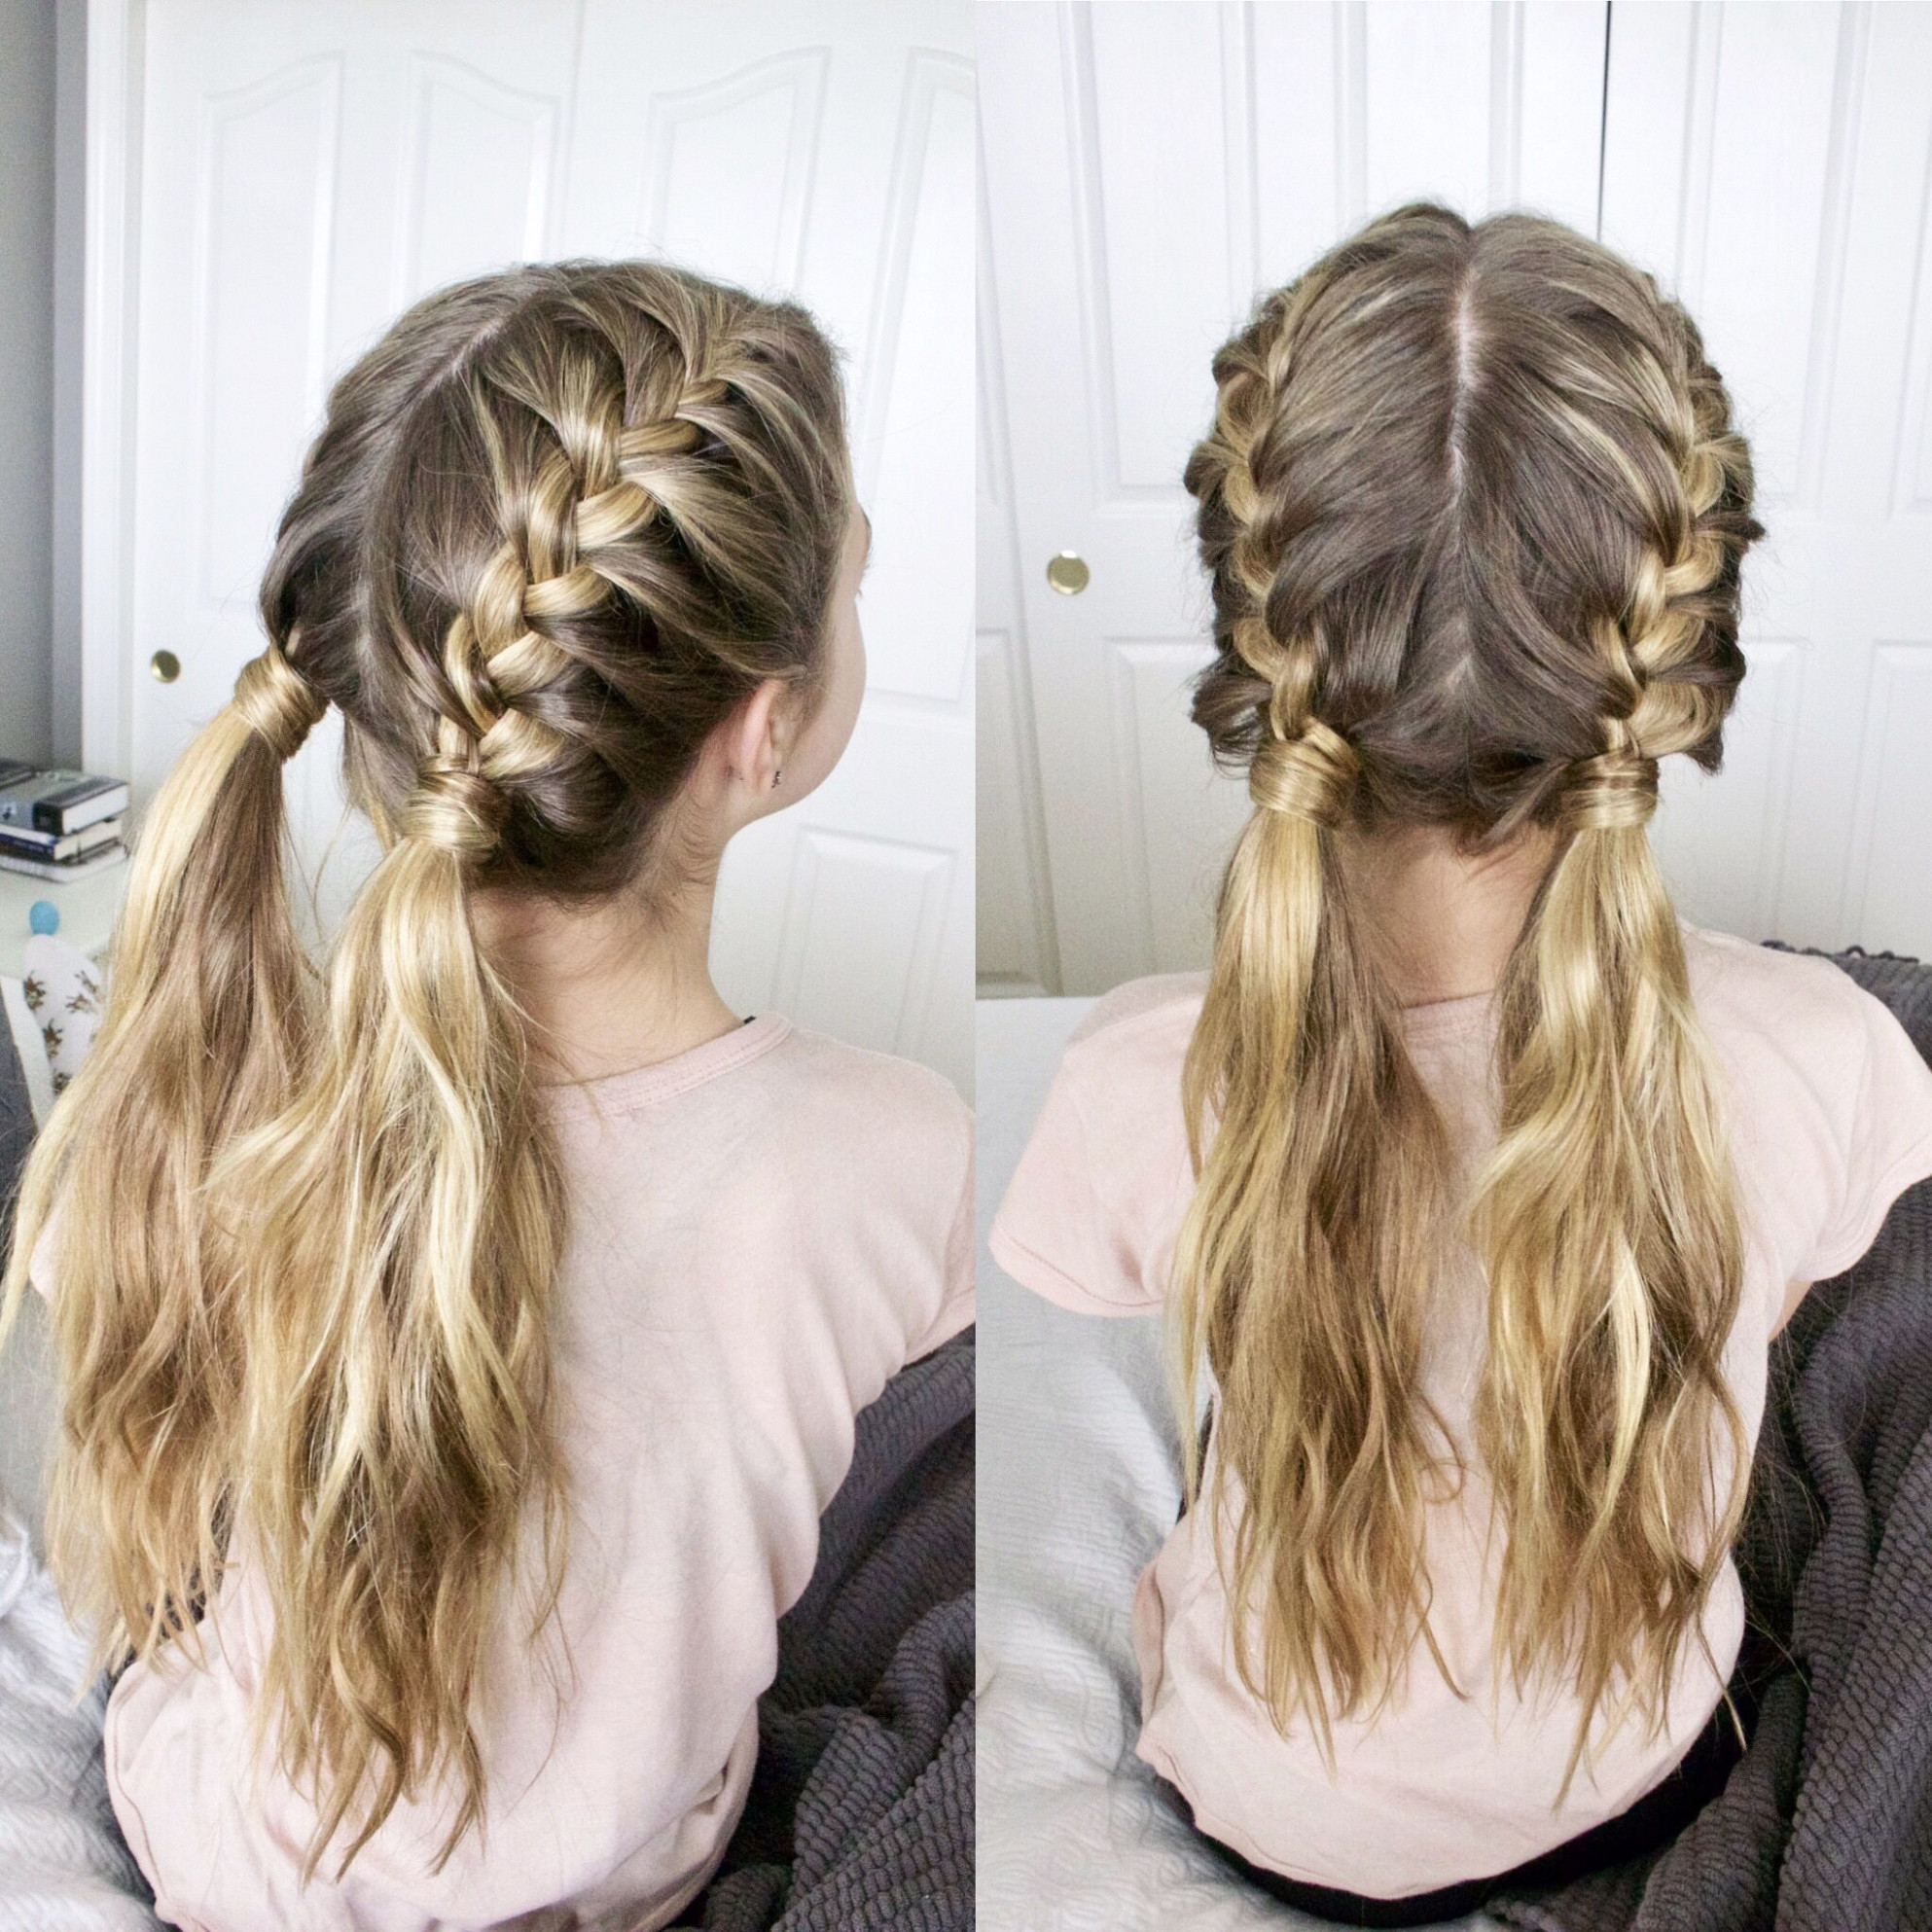 Two French braids into messy pigtails  Braided hairstyles, Two